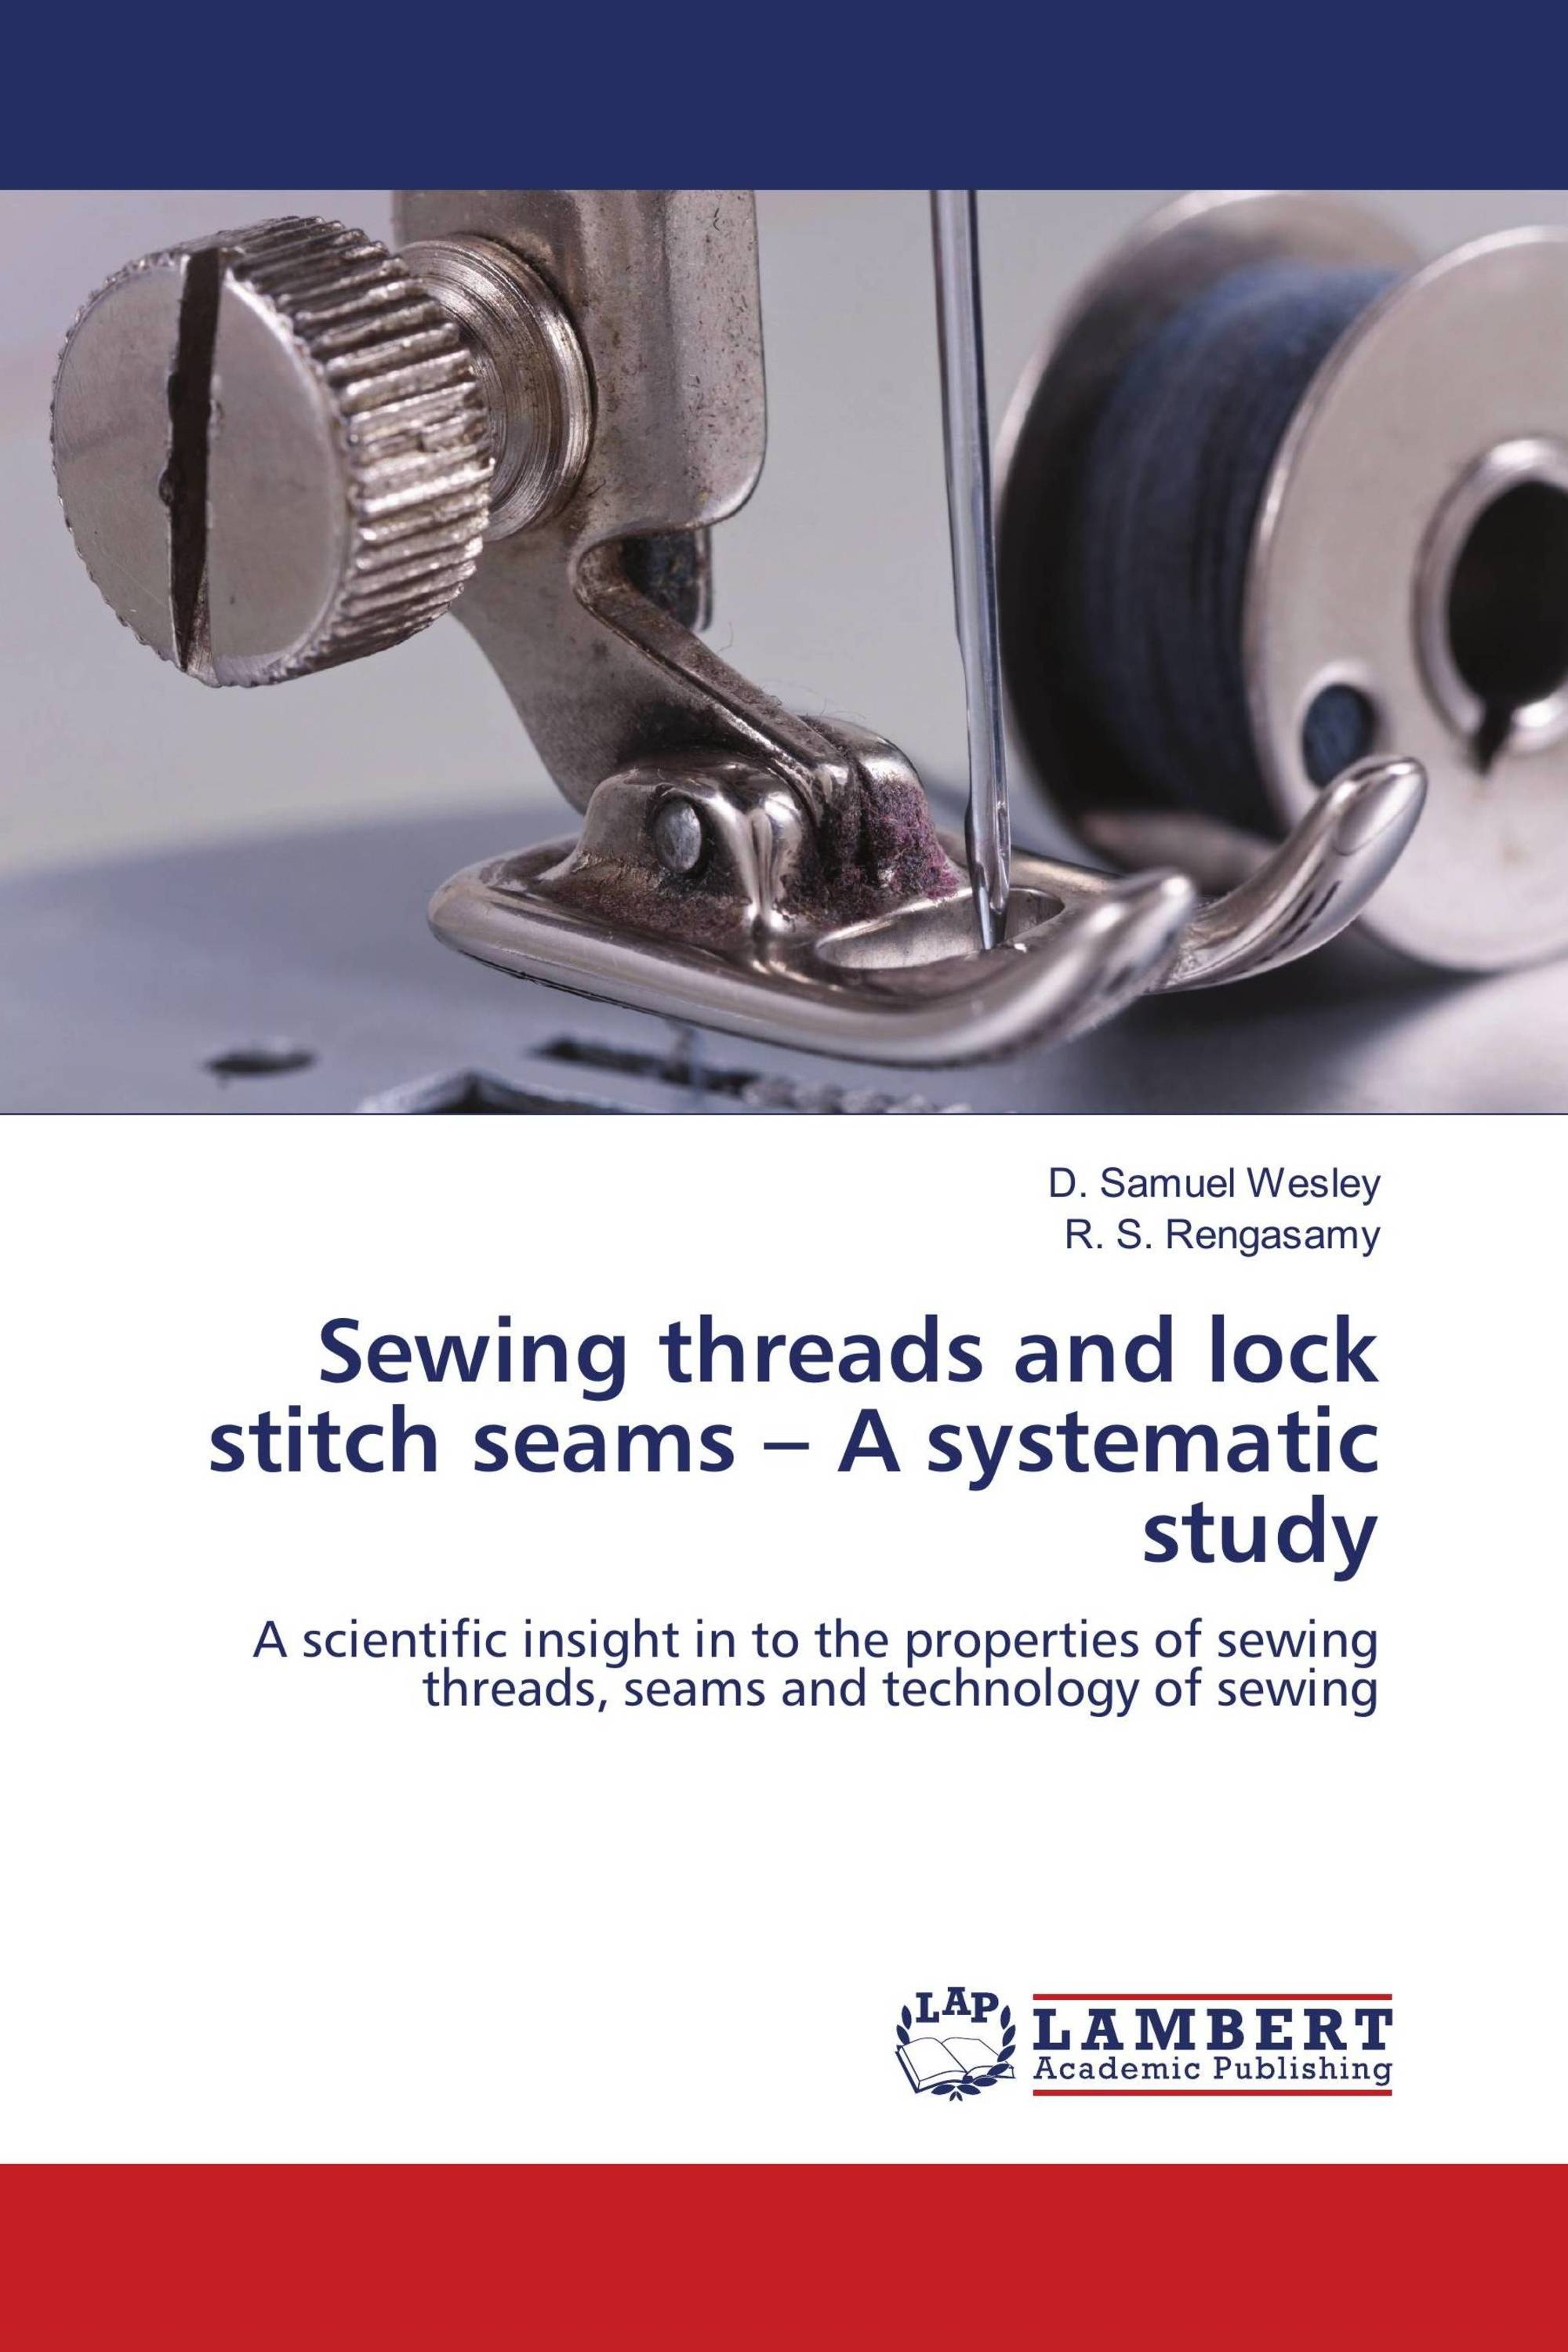 Sewing threads and lock stitch seams – A systematic study